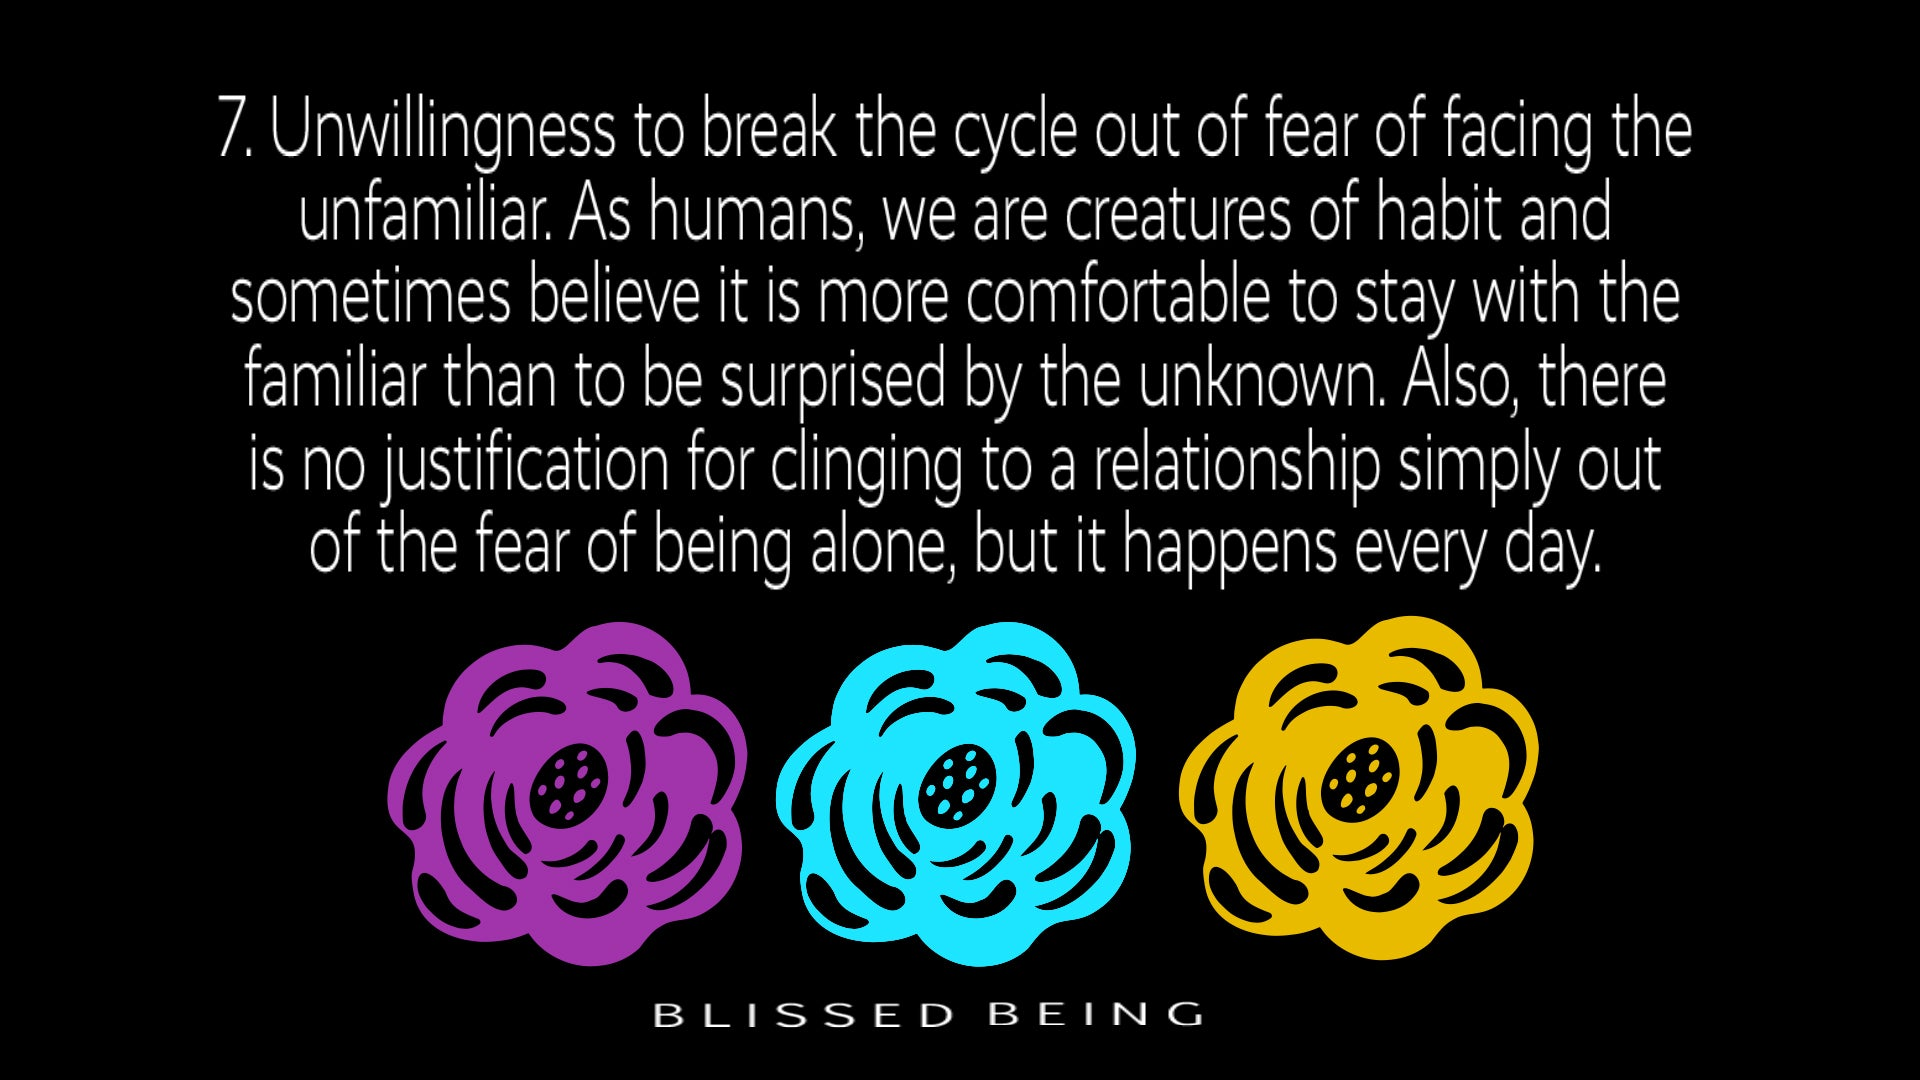 Unwilling to break the cycle